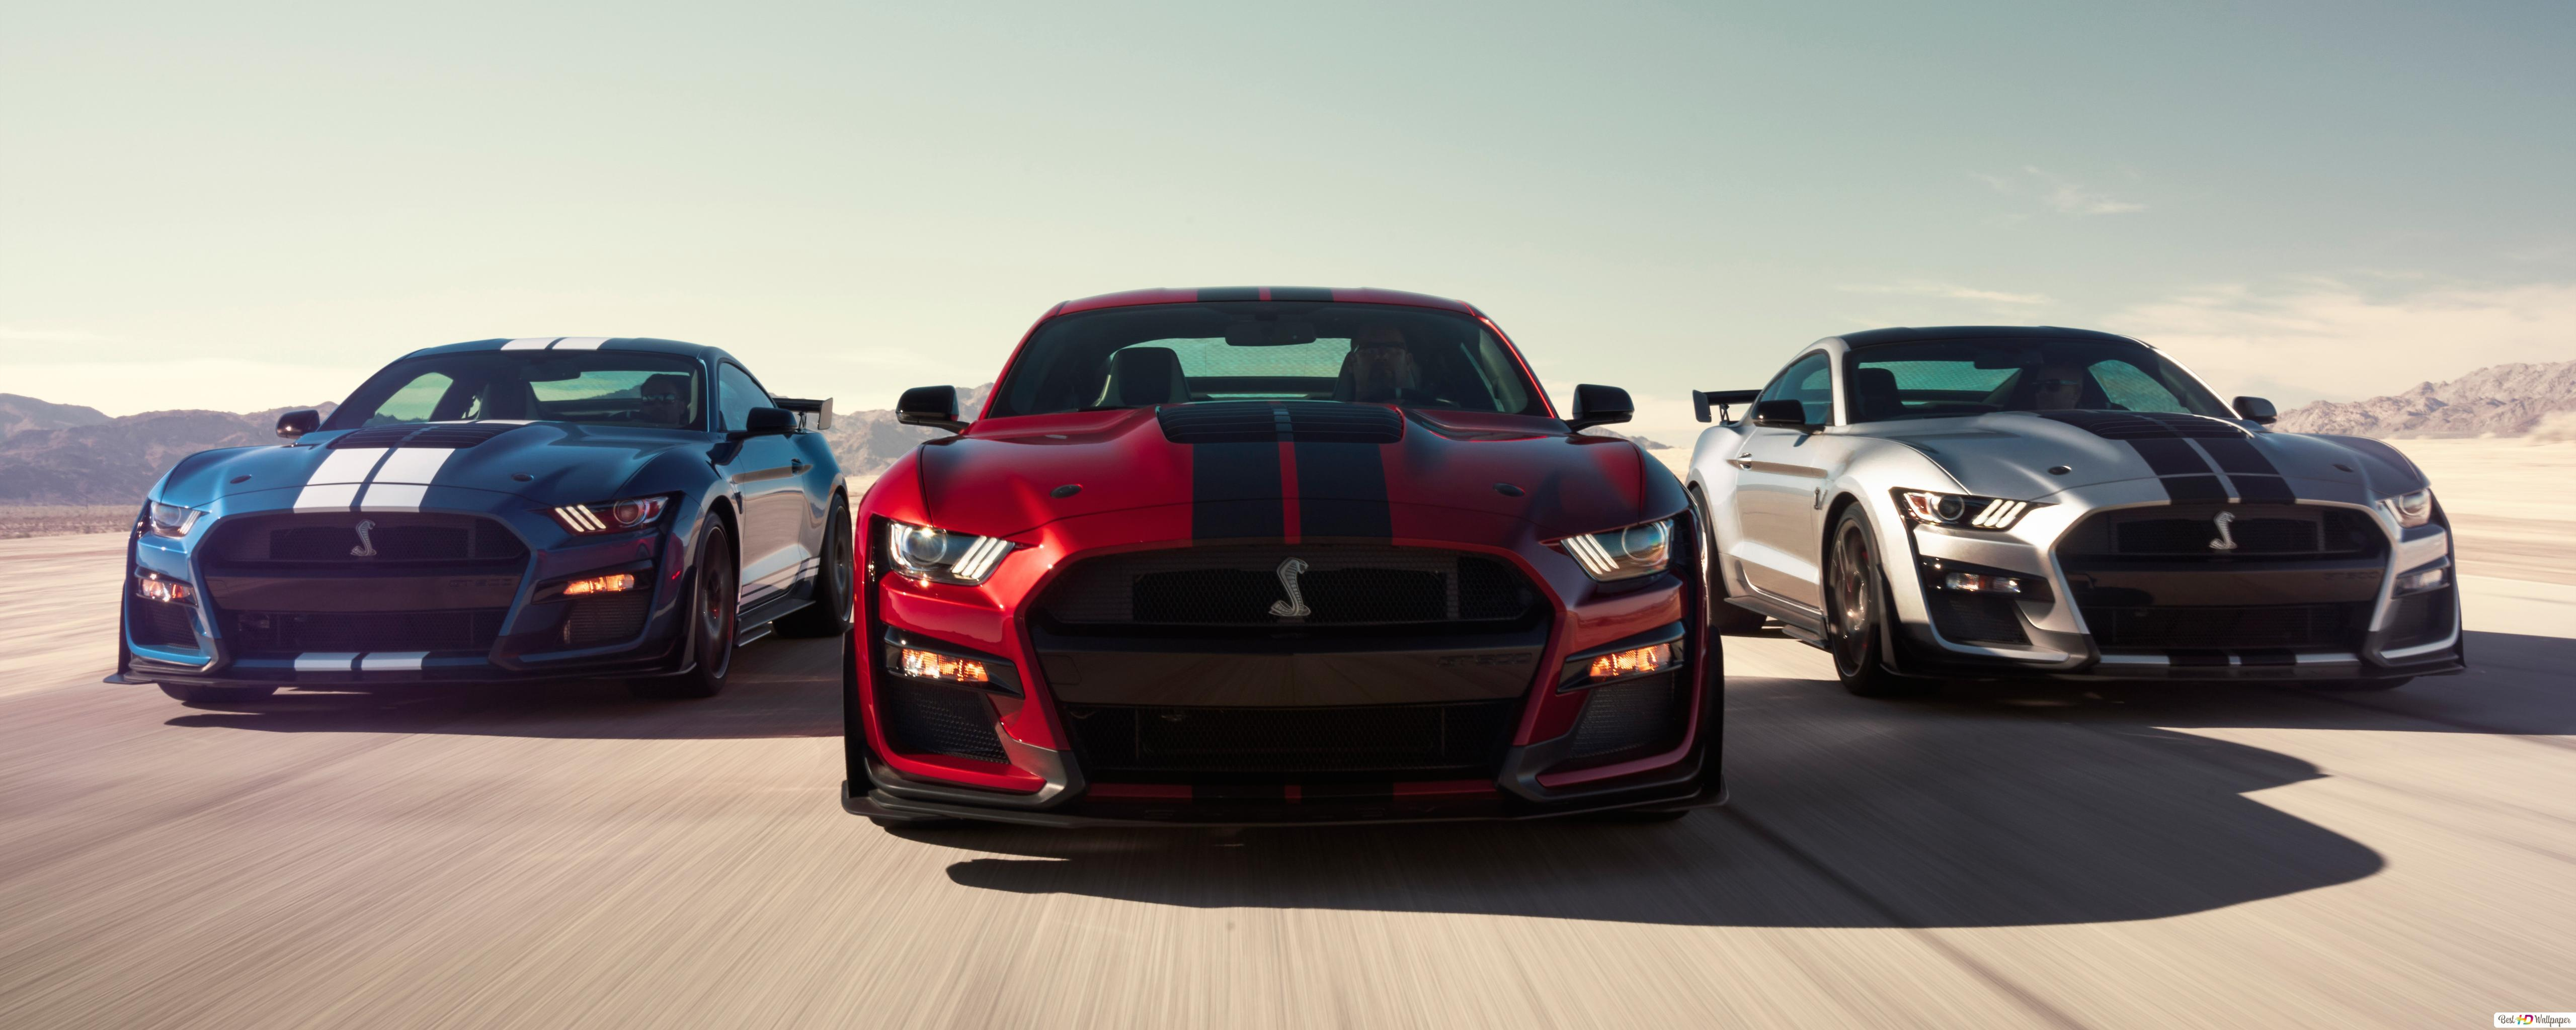 2020 Ford Mustang Shelby GT500 HD